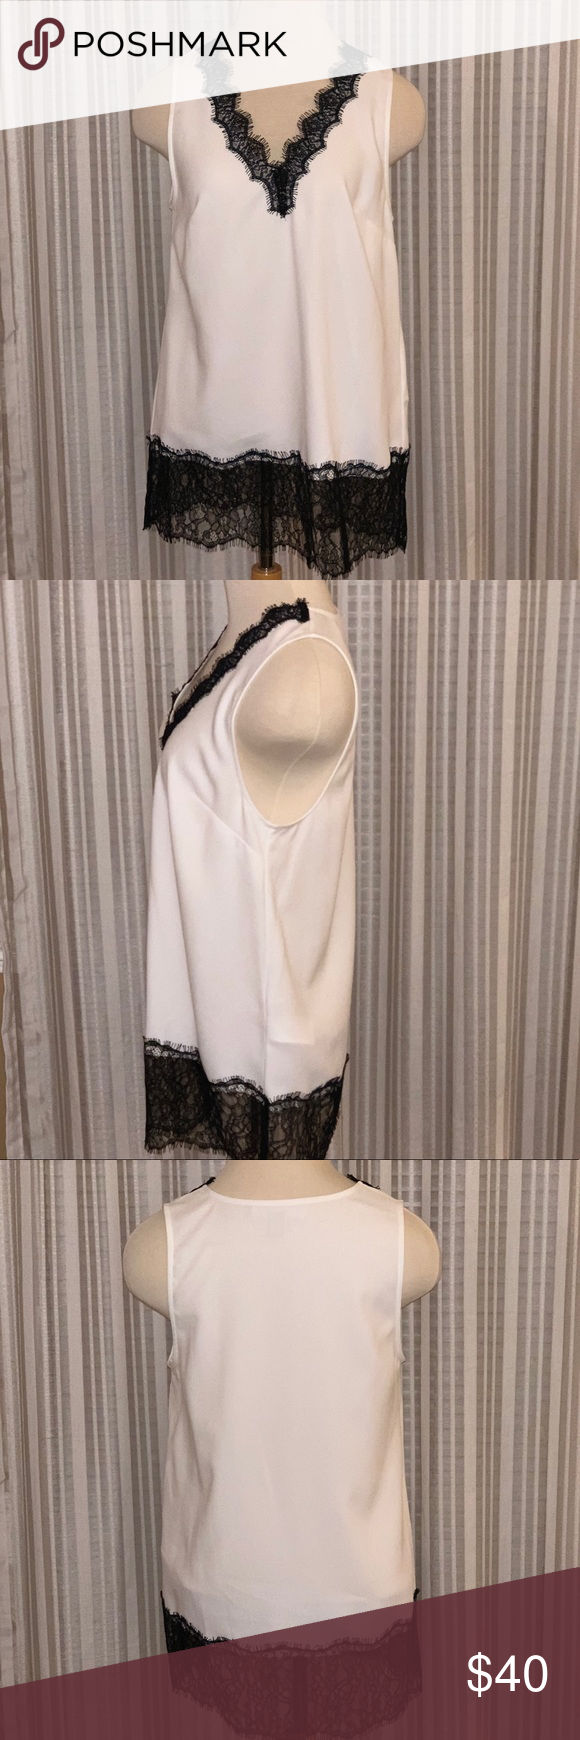 Nwot Michael Kors Tank Sleeveless White Silky Tank With Black Lacy Accents Dress Me Up Or Down Michael Kors Tops Tank Fashion Michael Kors Tops Dress Me Up [ 1740 x 580 Pixel ]